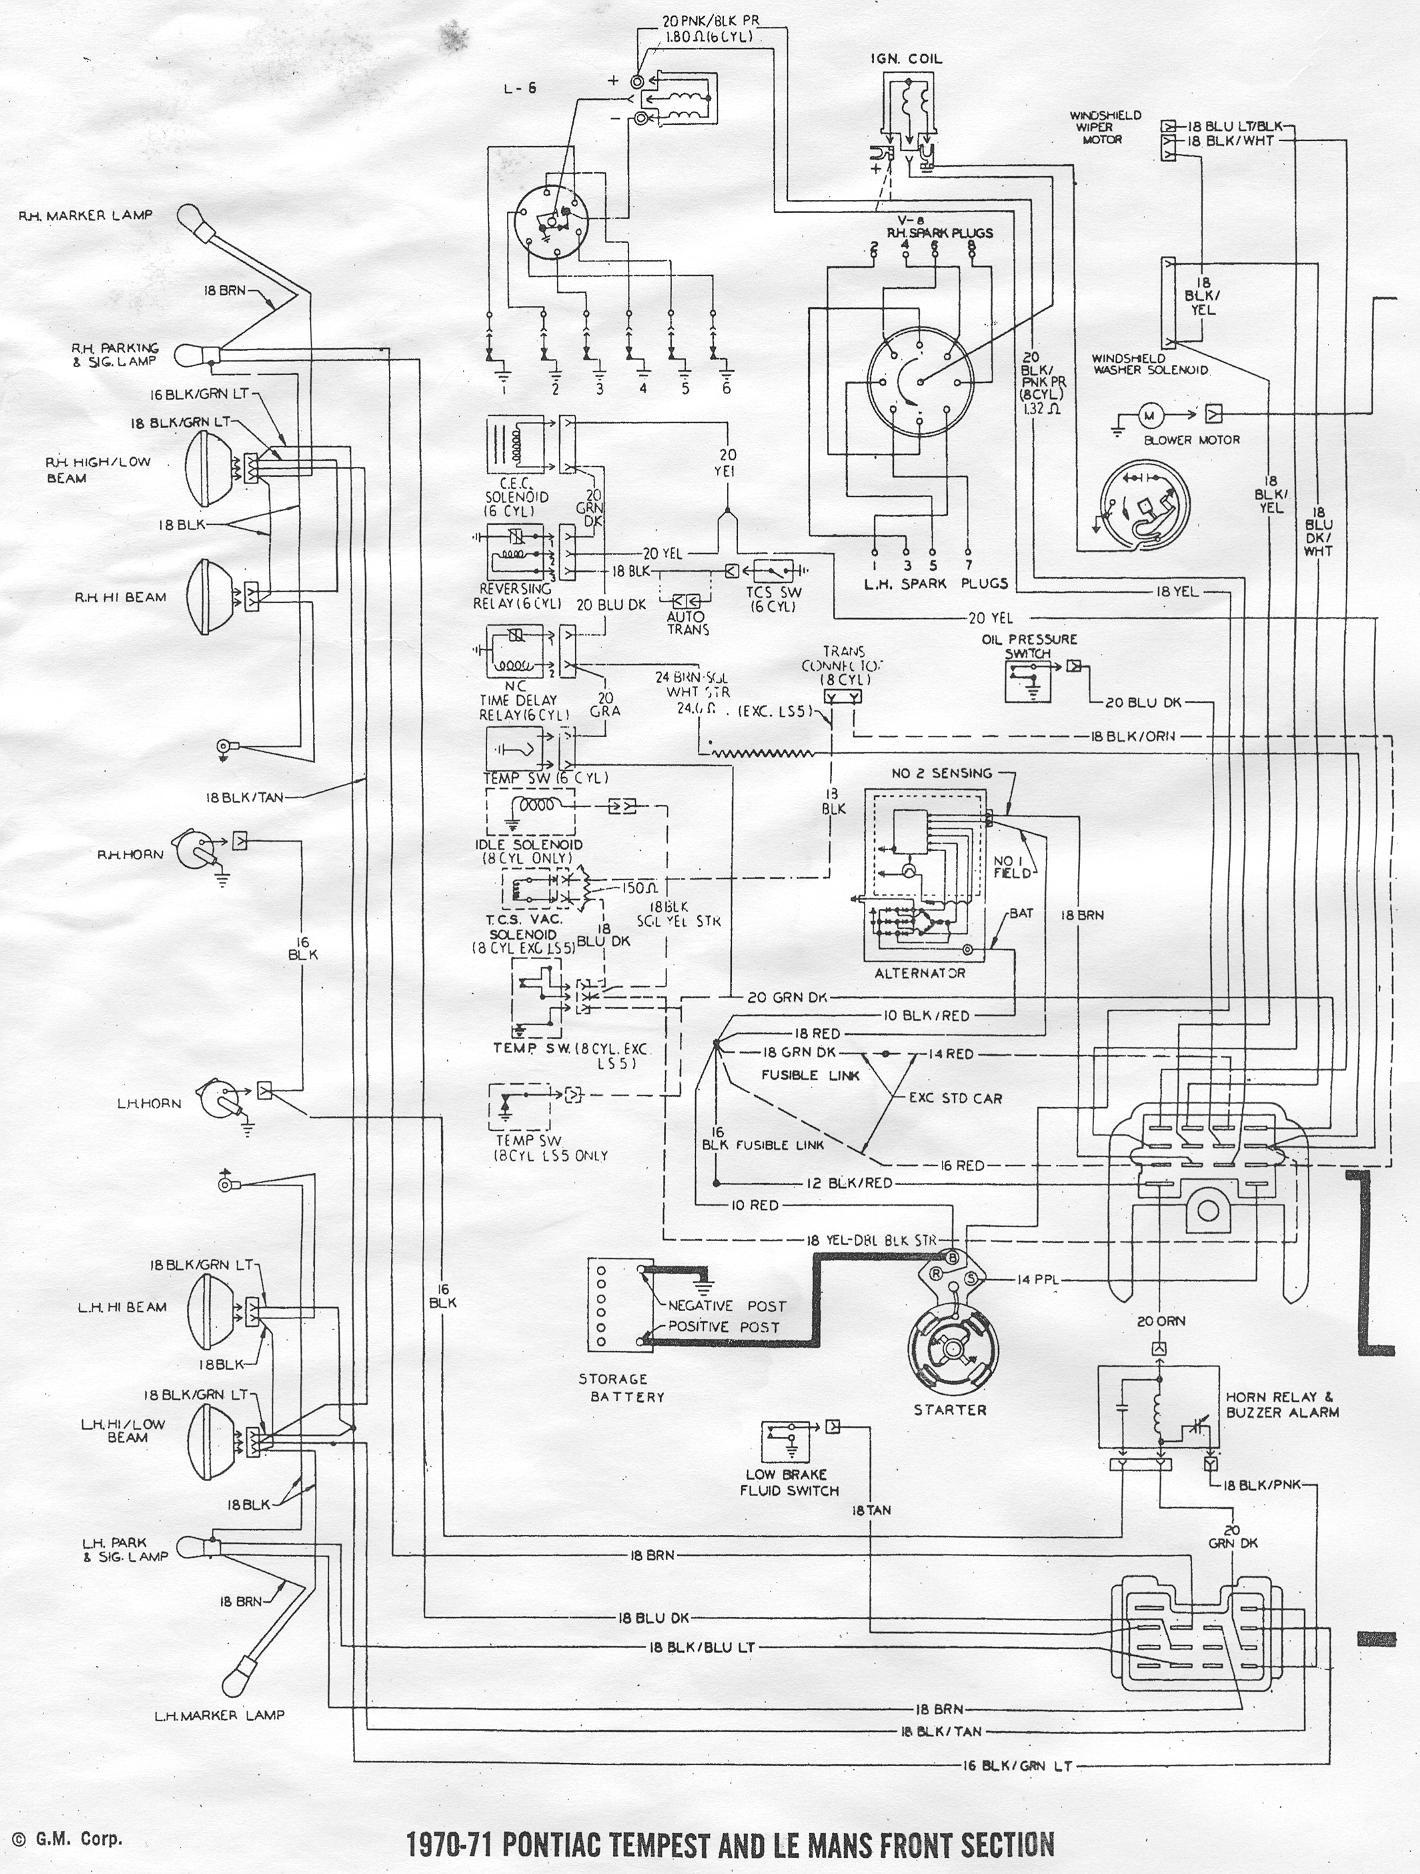 69 Pontiac Starter Wiring Diagram Free Picture Library Harley Wire Schematic Click Image For Larger Version Name 70 71 Gto Page1